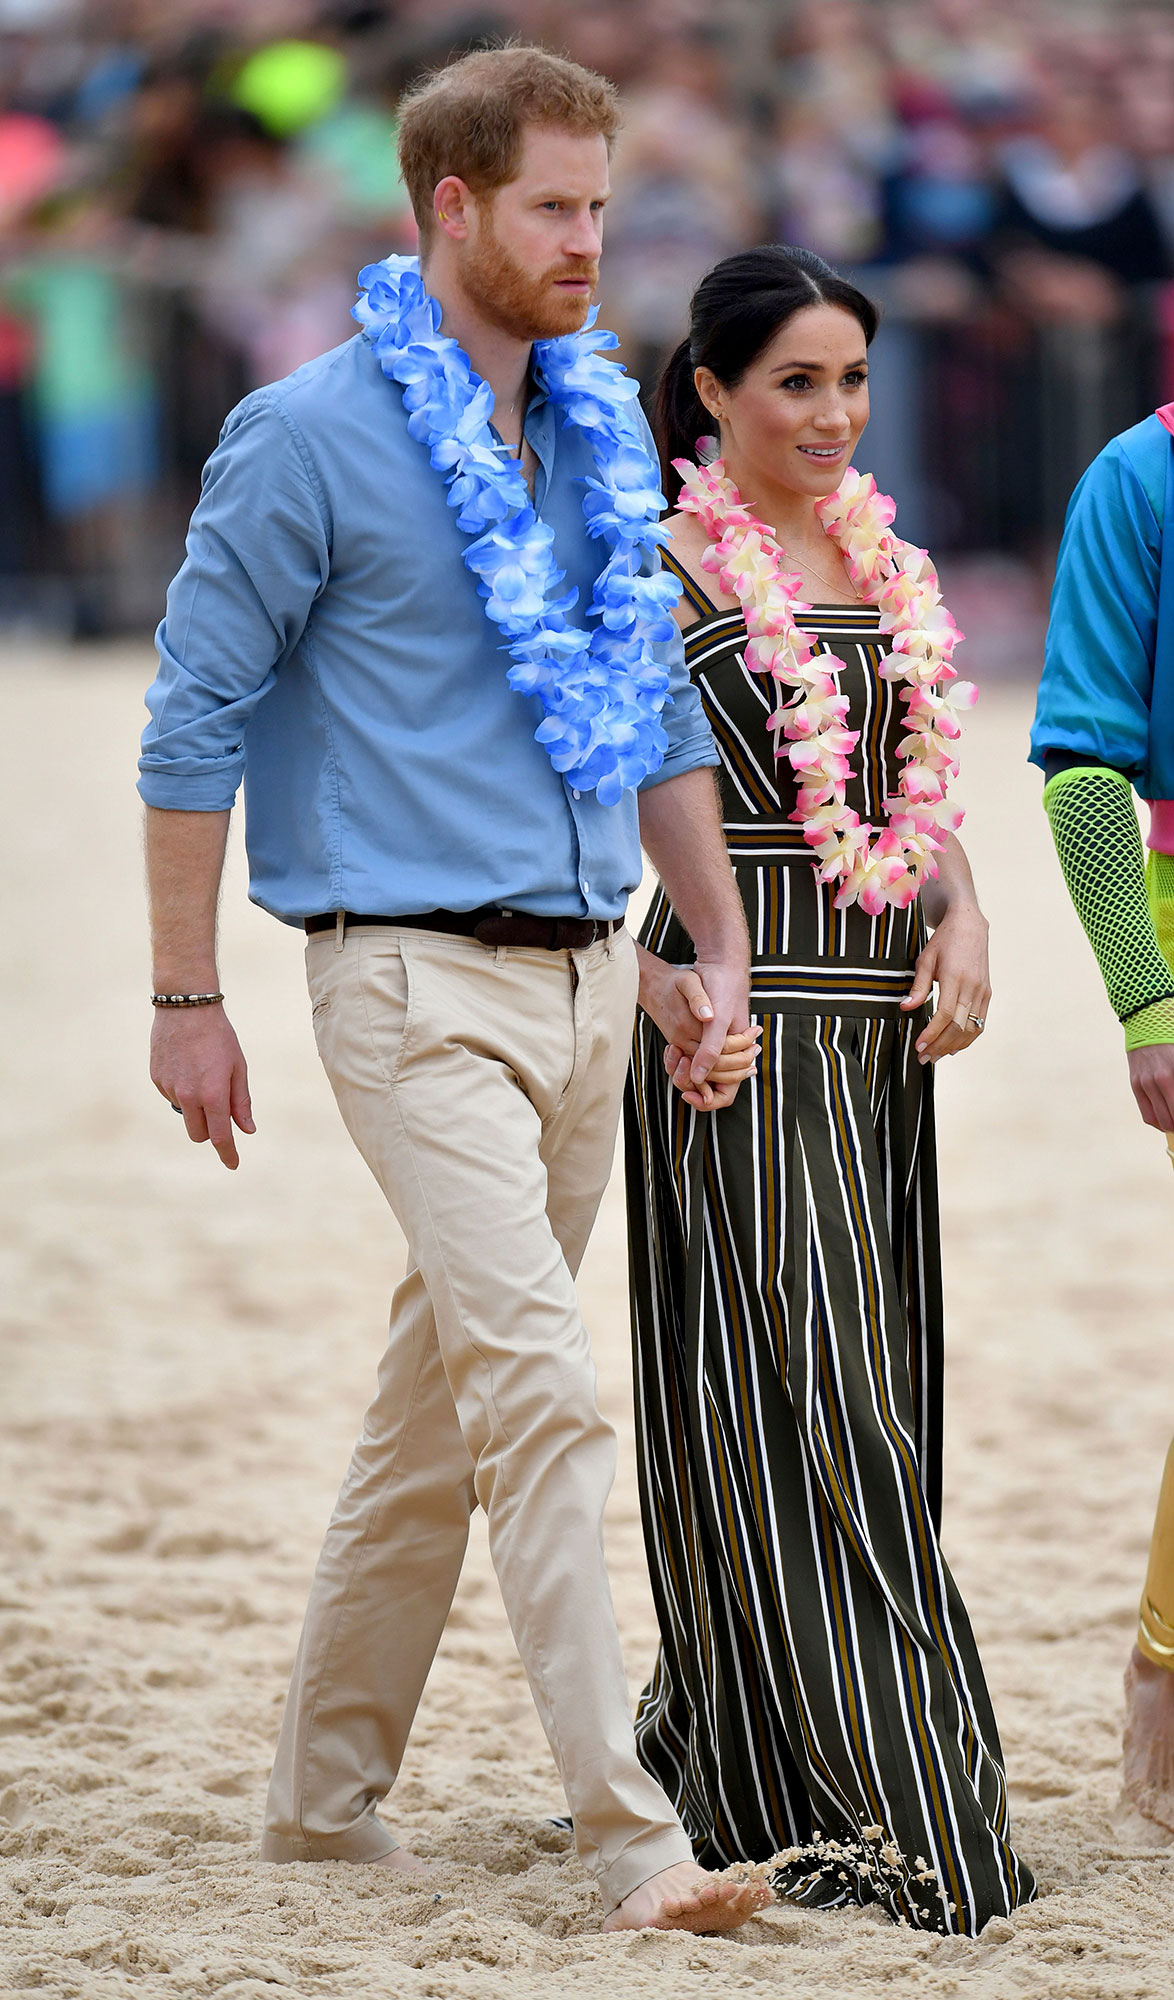 "<div class=""meta image-caption""><div class=""origin-logo origin-image none""><span>none</span></div><span class=""caption-text"">Prince Harry and Meghan, Duchess of Sussex meet a local surfing community group, known as OneWave at Bondi Beach Sydney, Australia, Friday, Oct. 19. (Dominic Lipinski/Pool via AP)</span></div>"